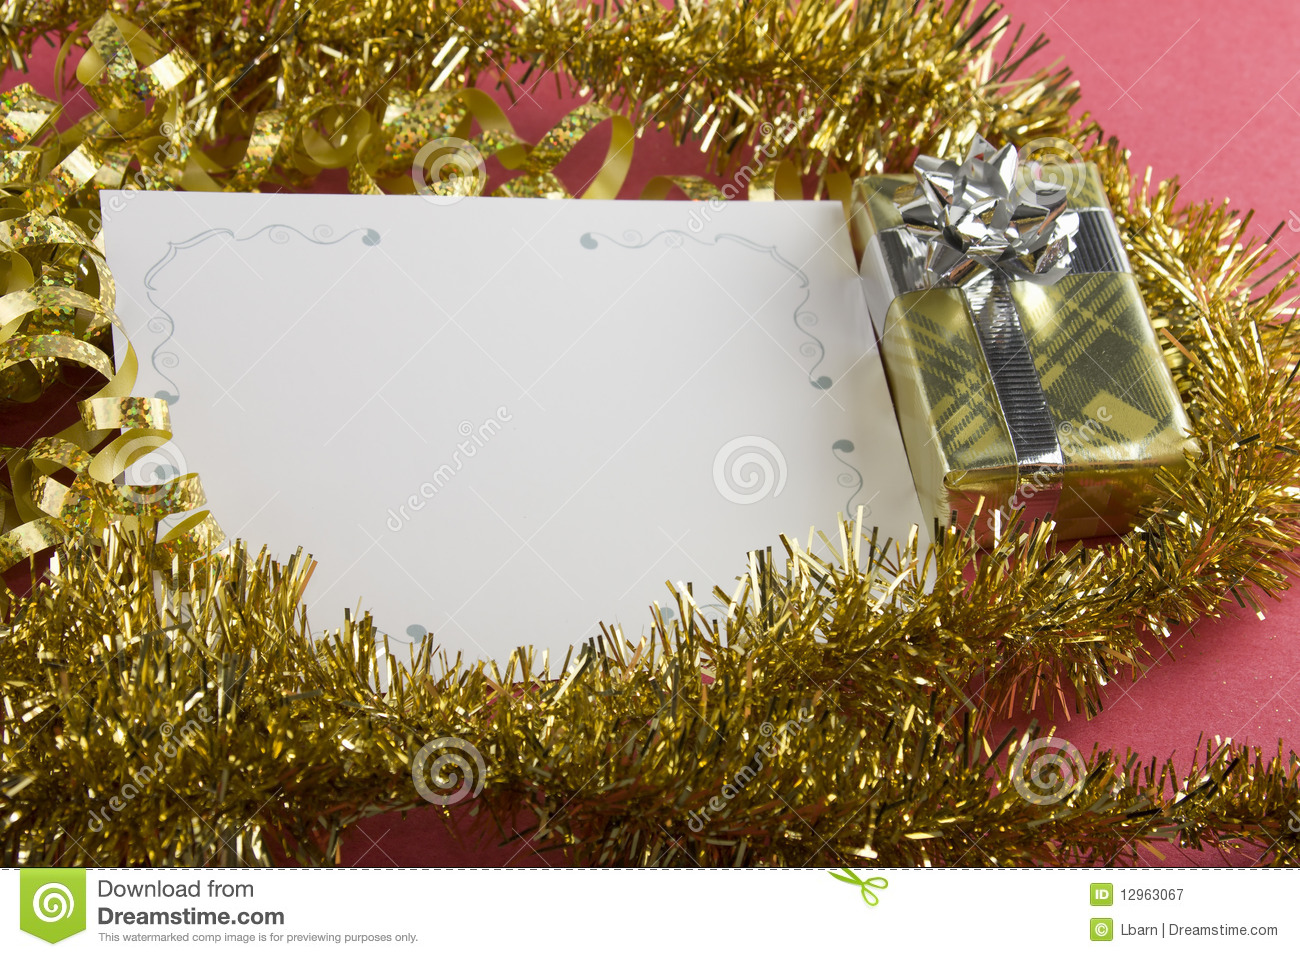 Blank Christmas Cards Images - Reverse Search